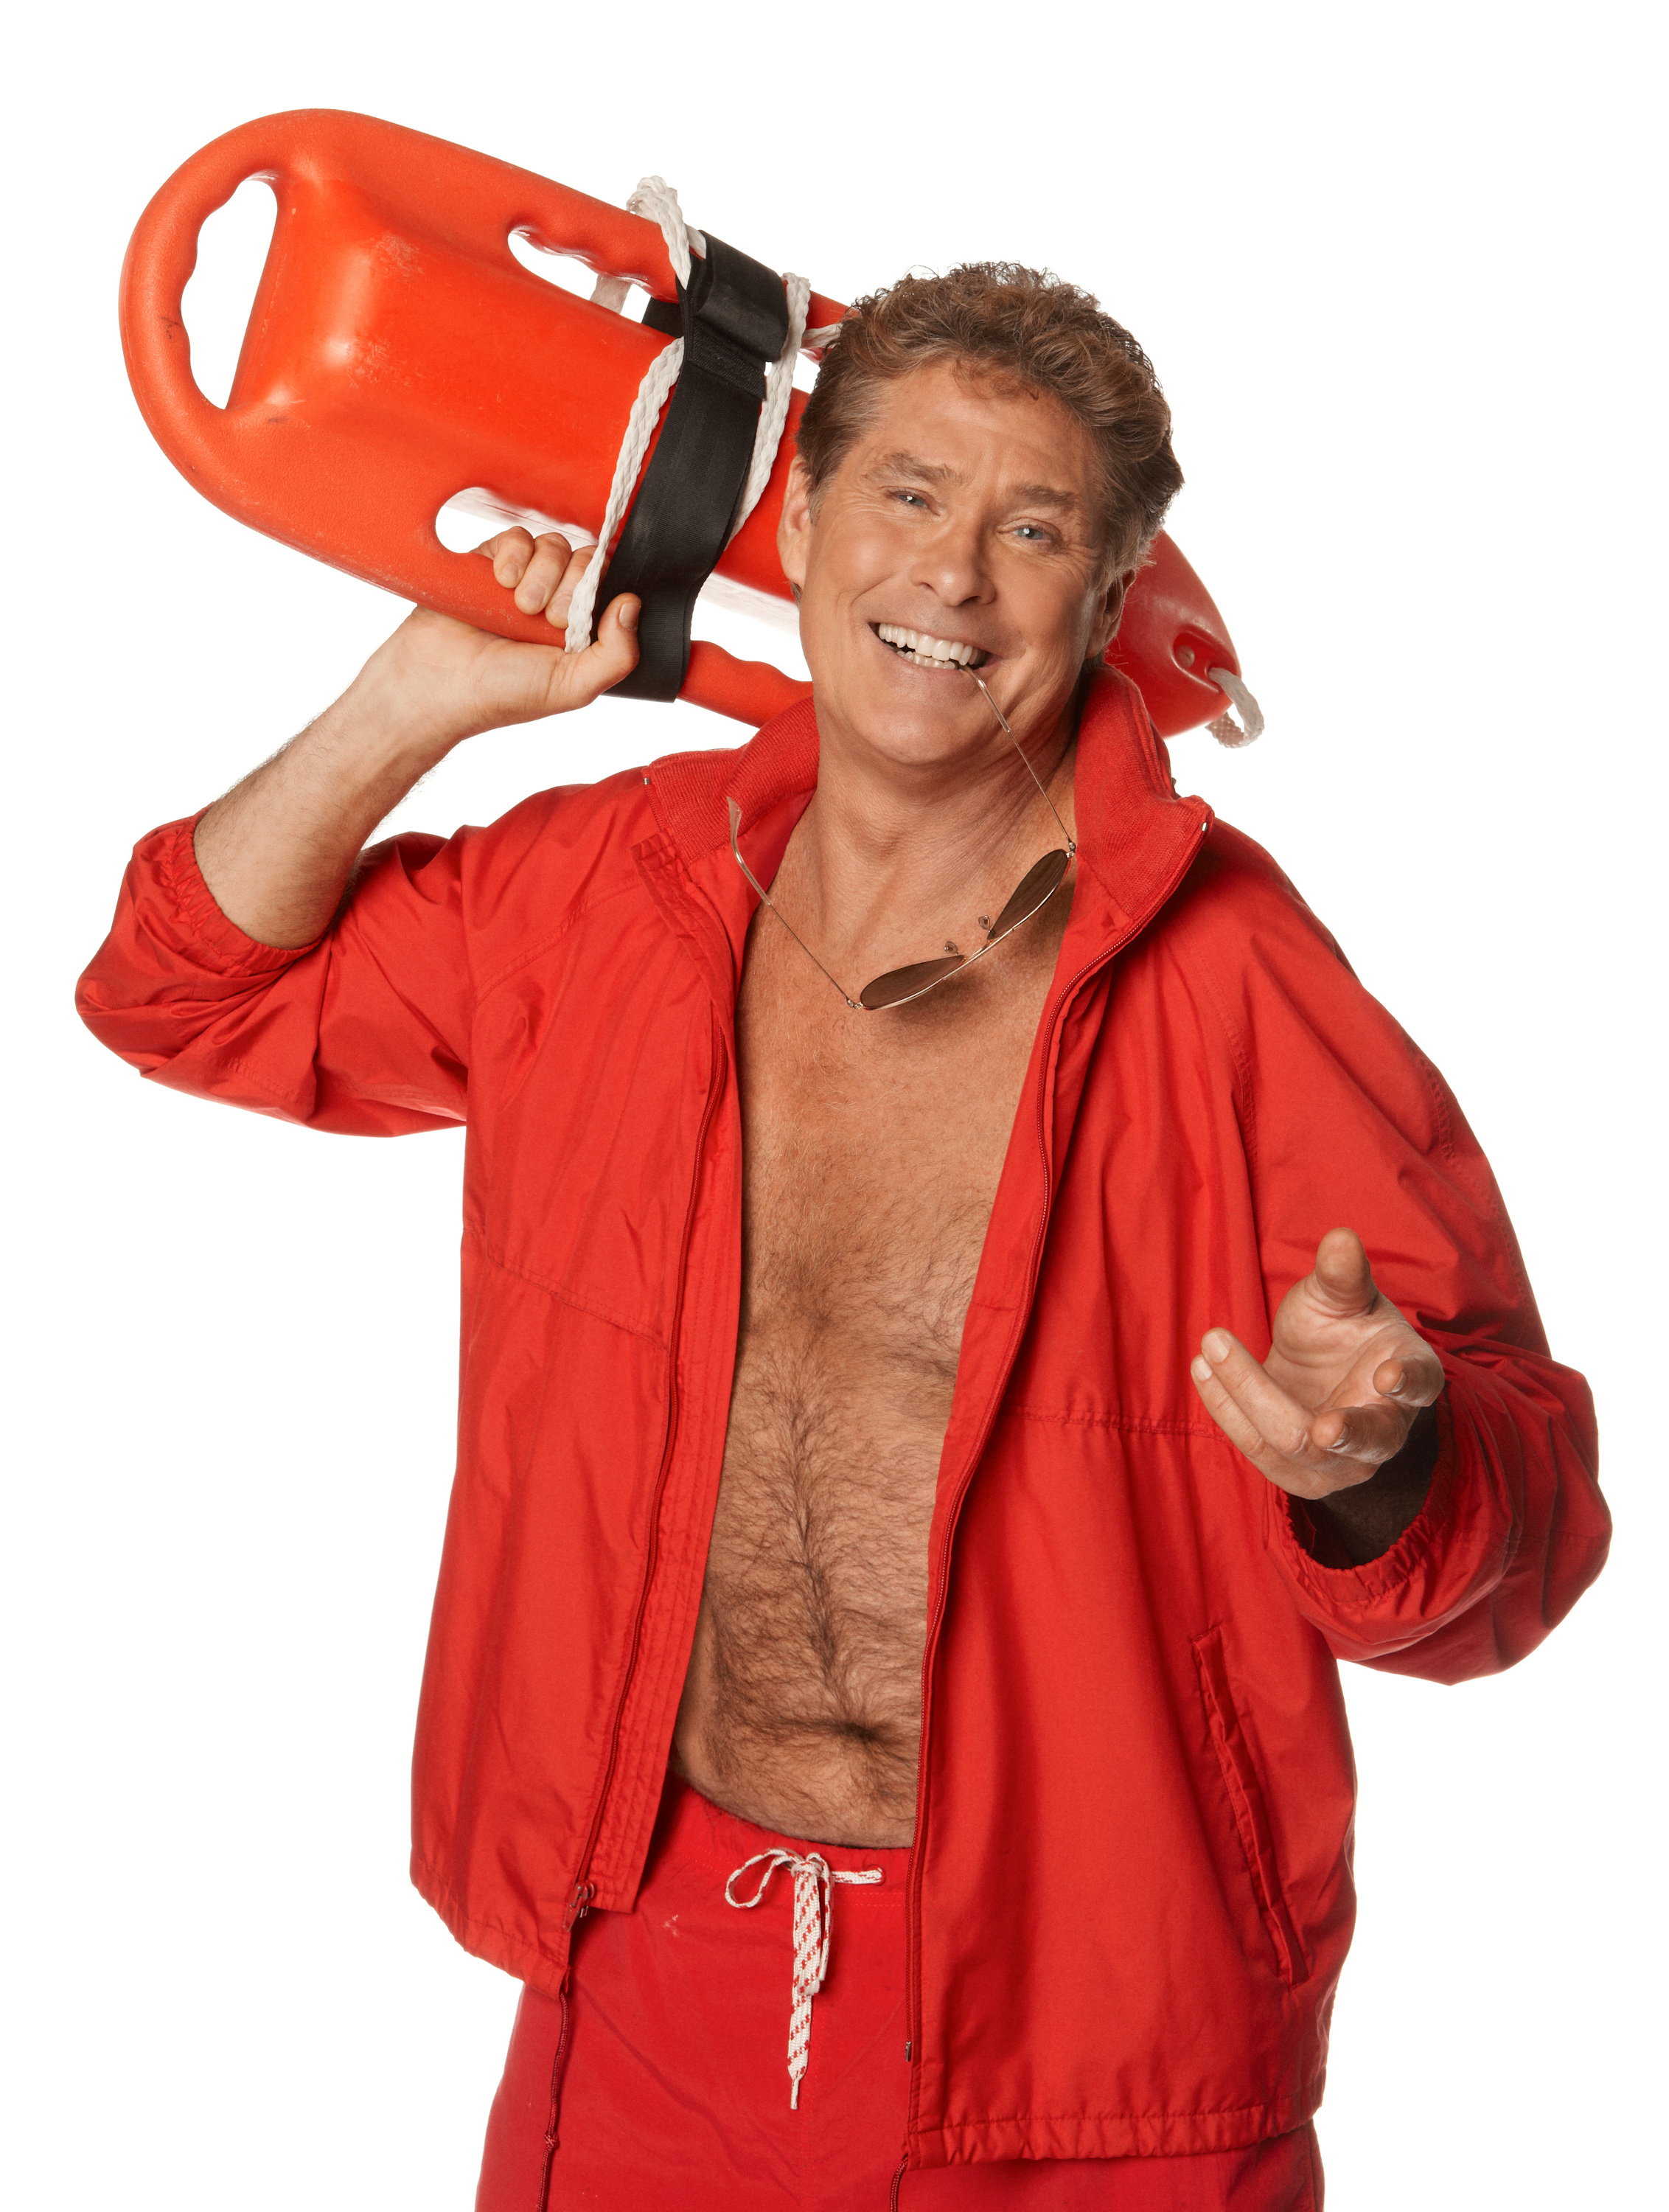 213055 comedy%20central%20roast%20of%20david%20hasselhoff%20pic%205 3447d1 original 1465438724